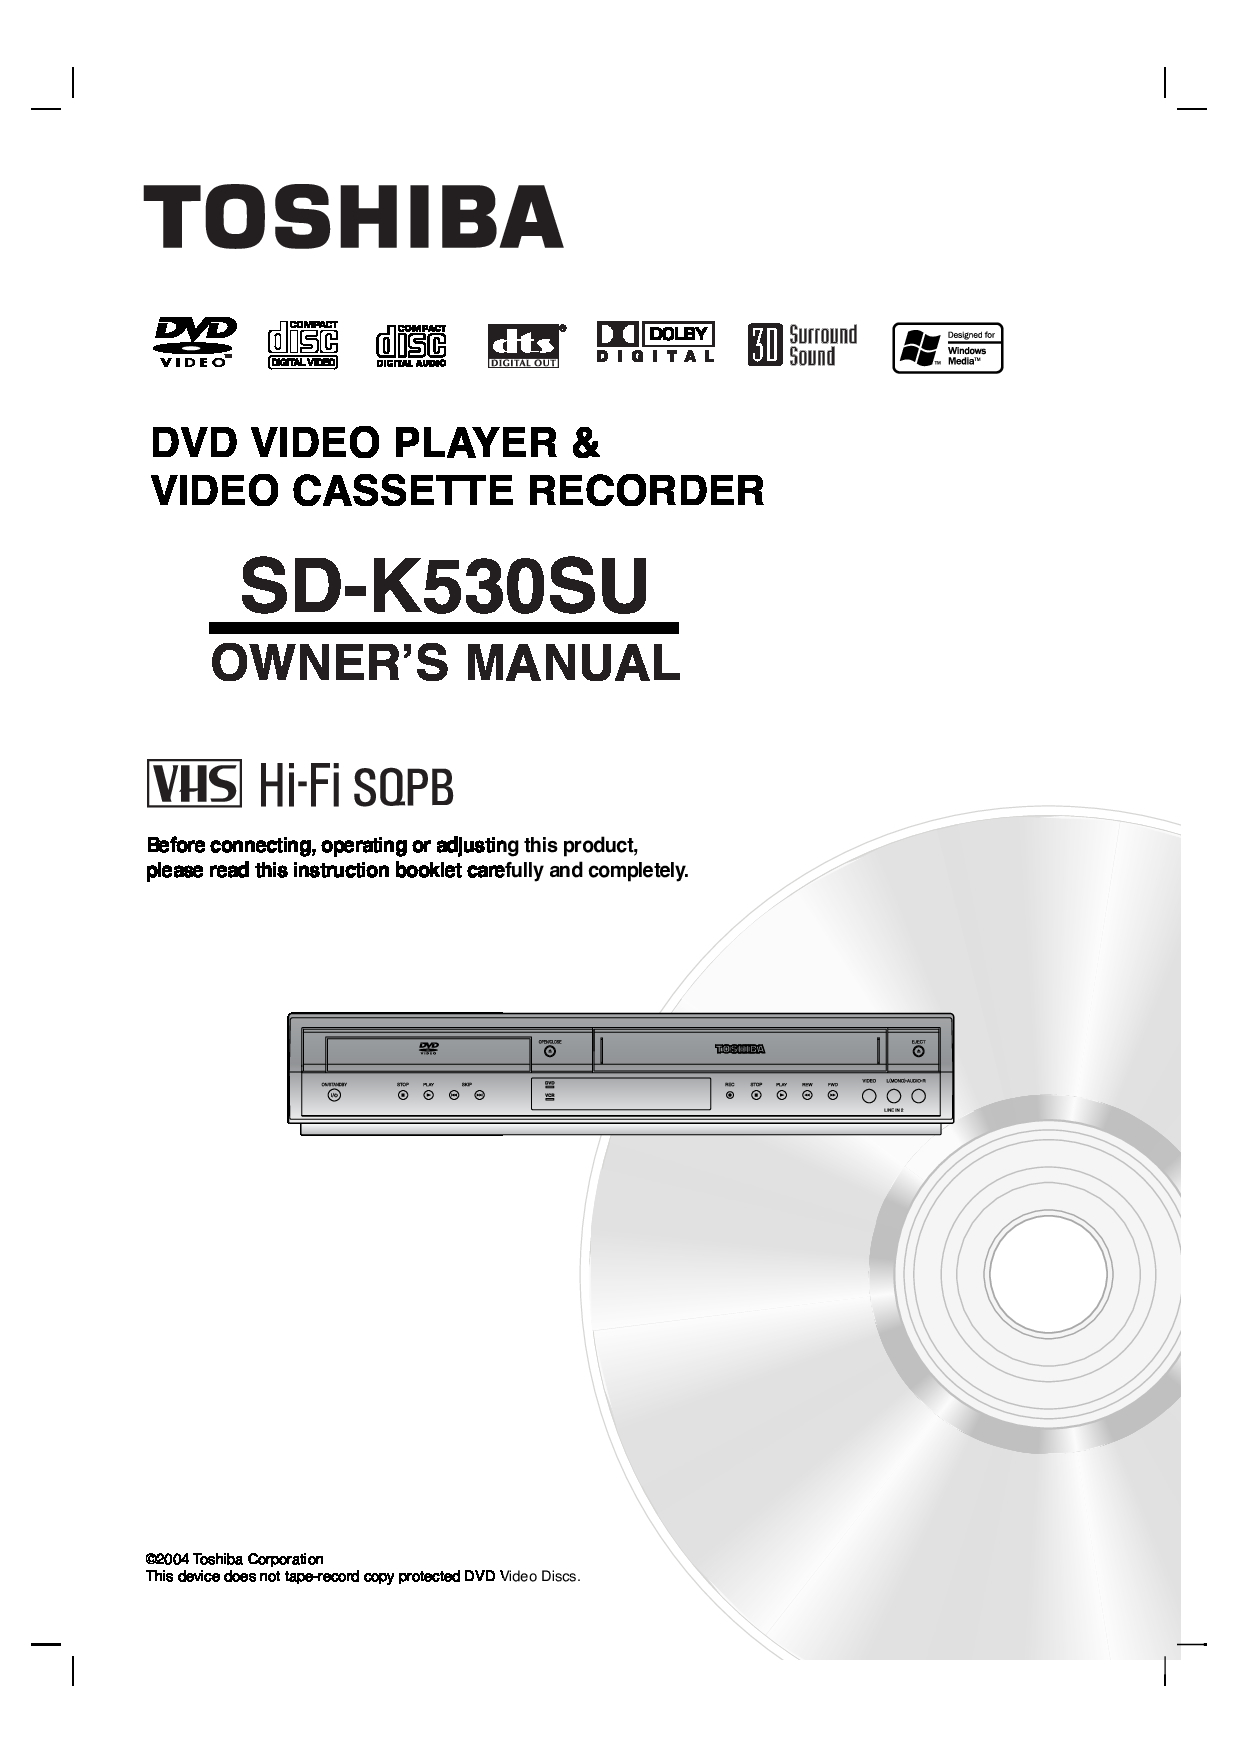 Toshiba SD-K530SU Owner Manual